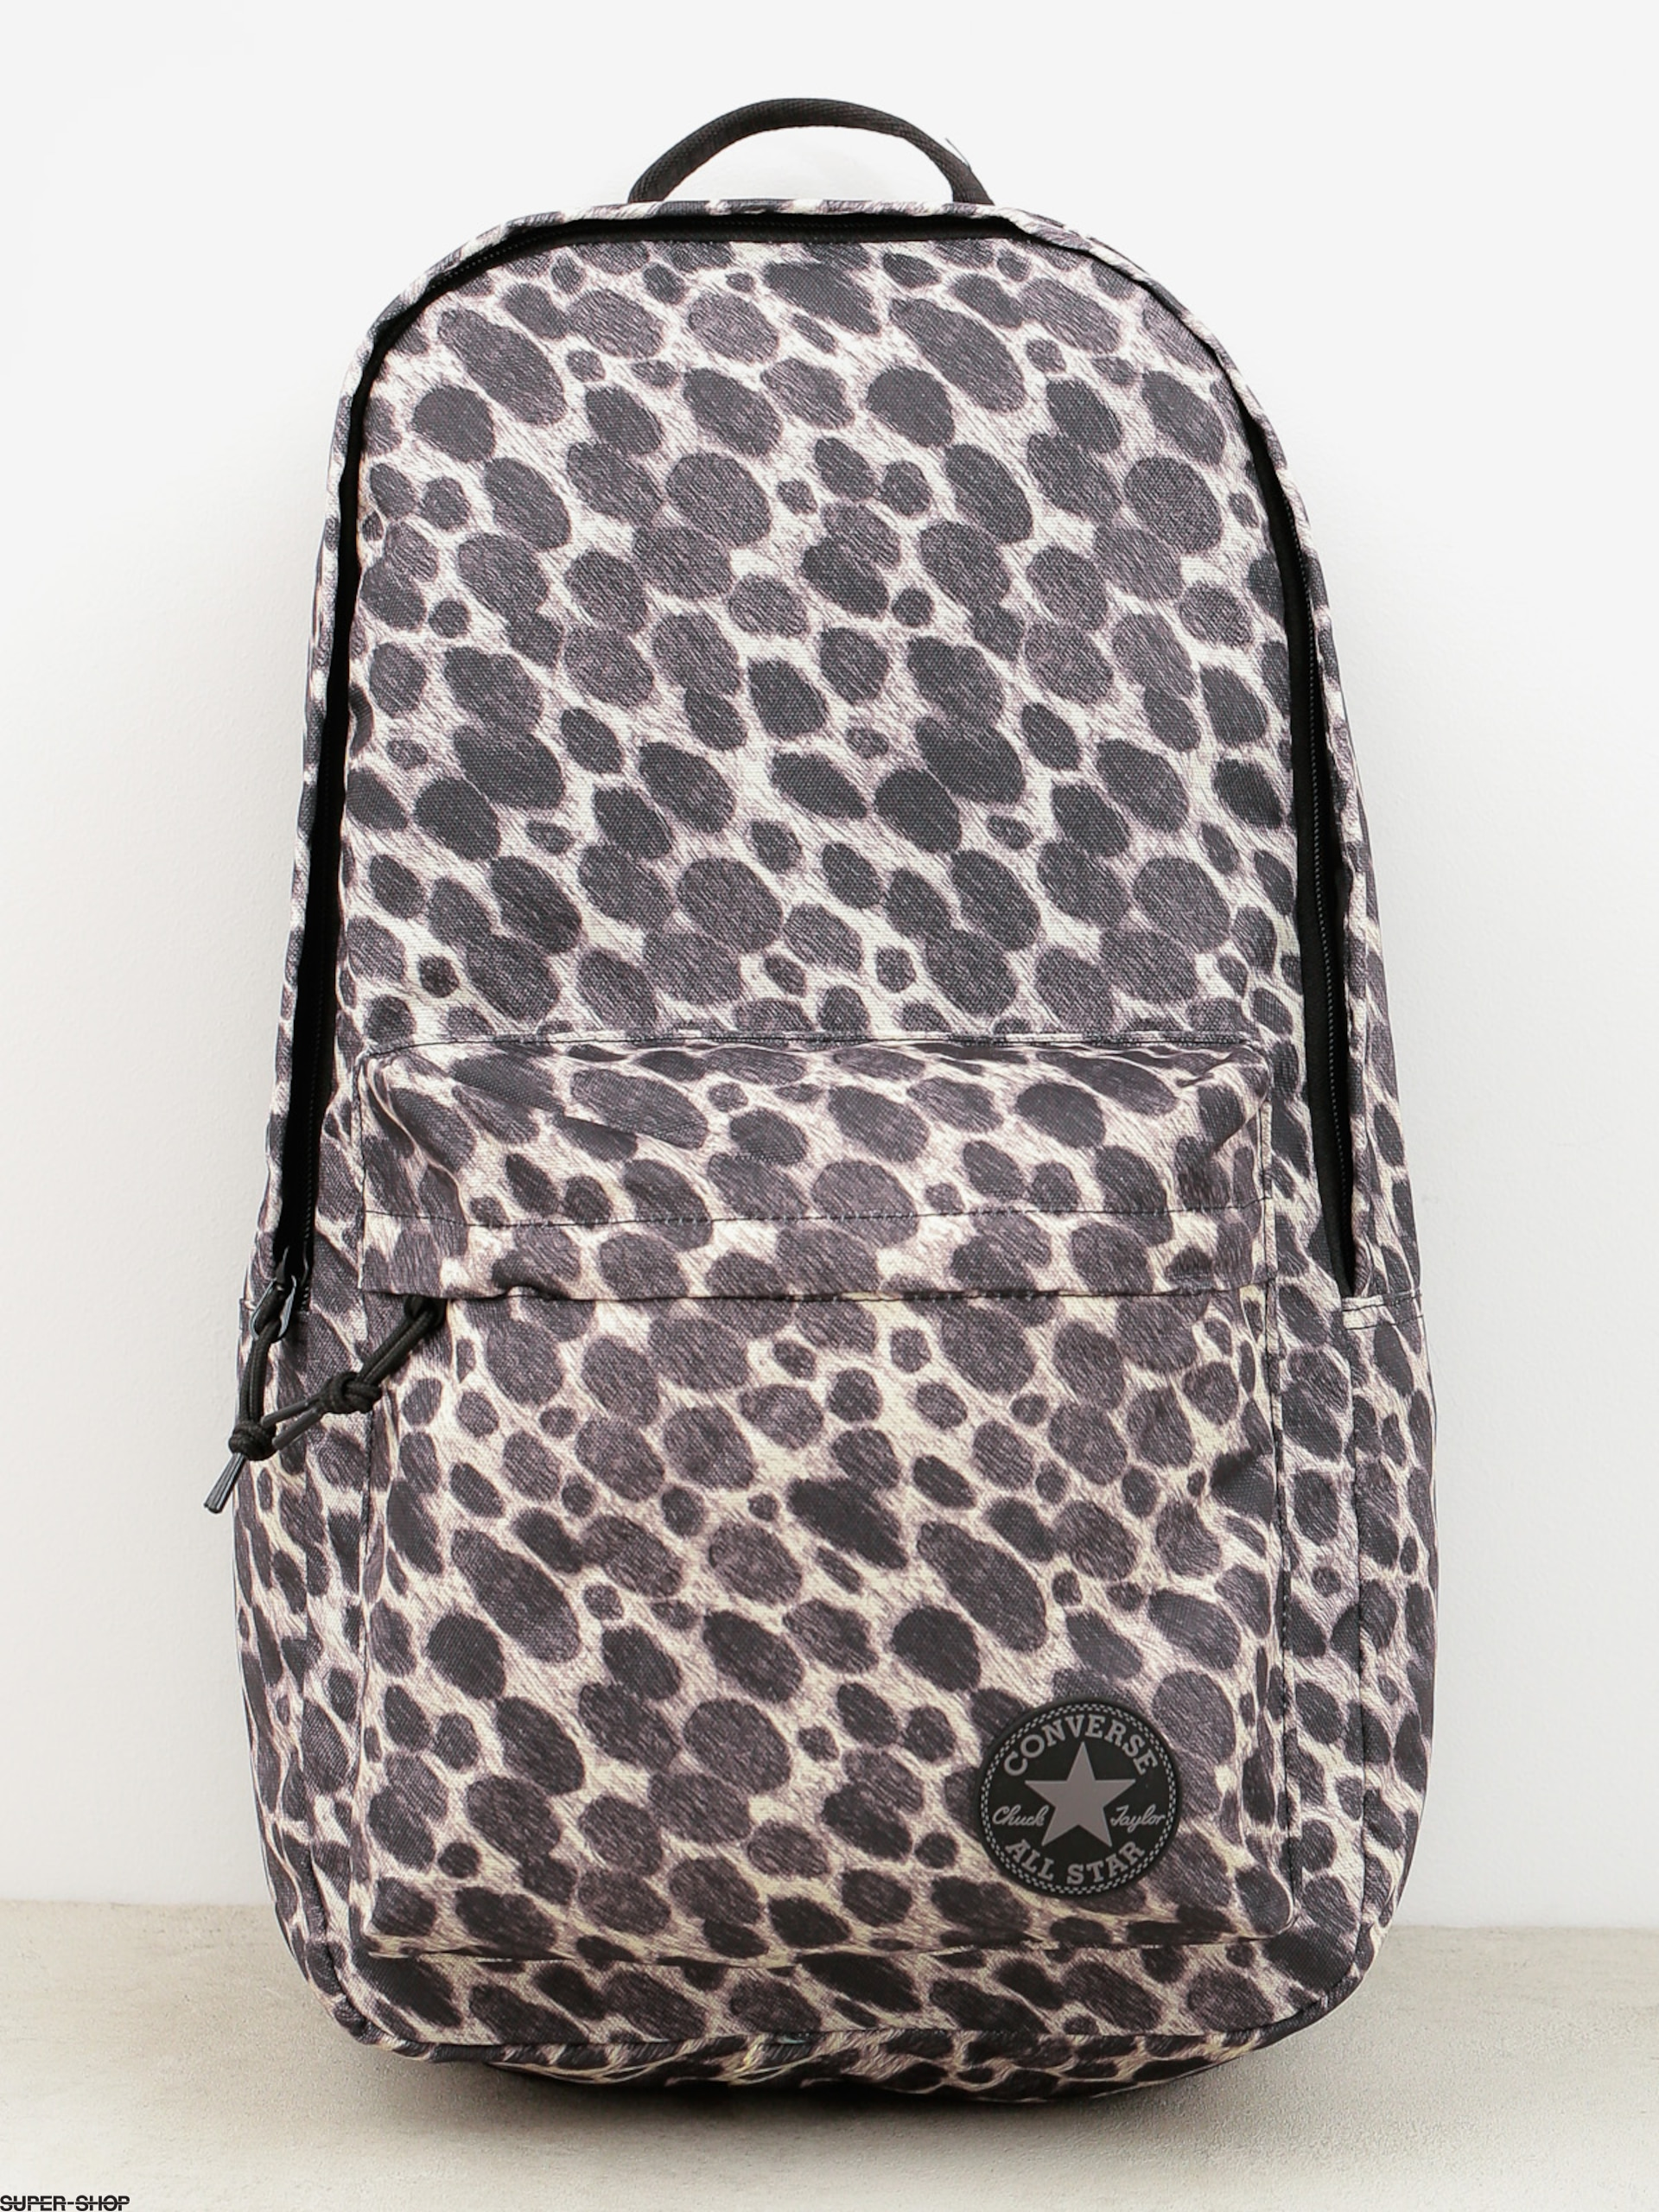 902379-w1920-converse-backpack-edc-poly-natural.jpg 6949fbe0c41bc